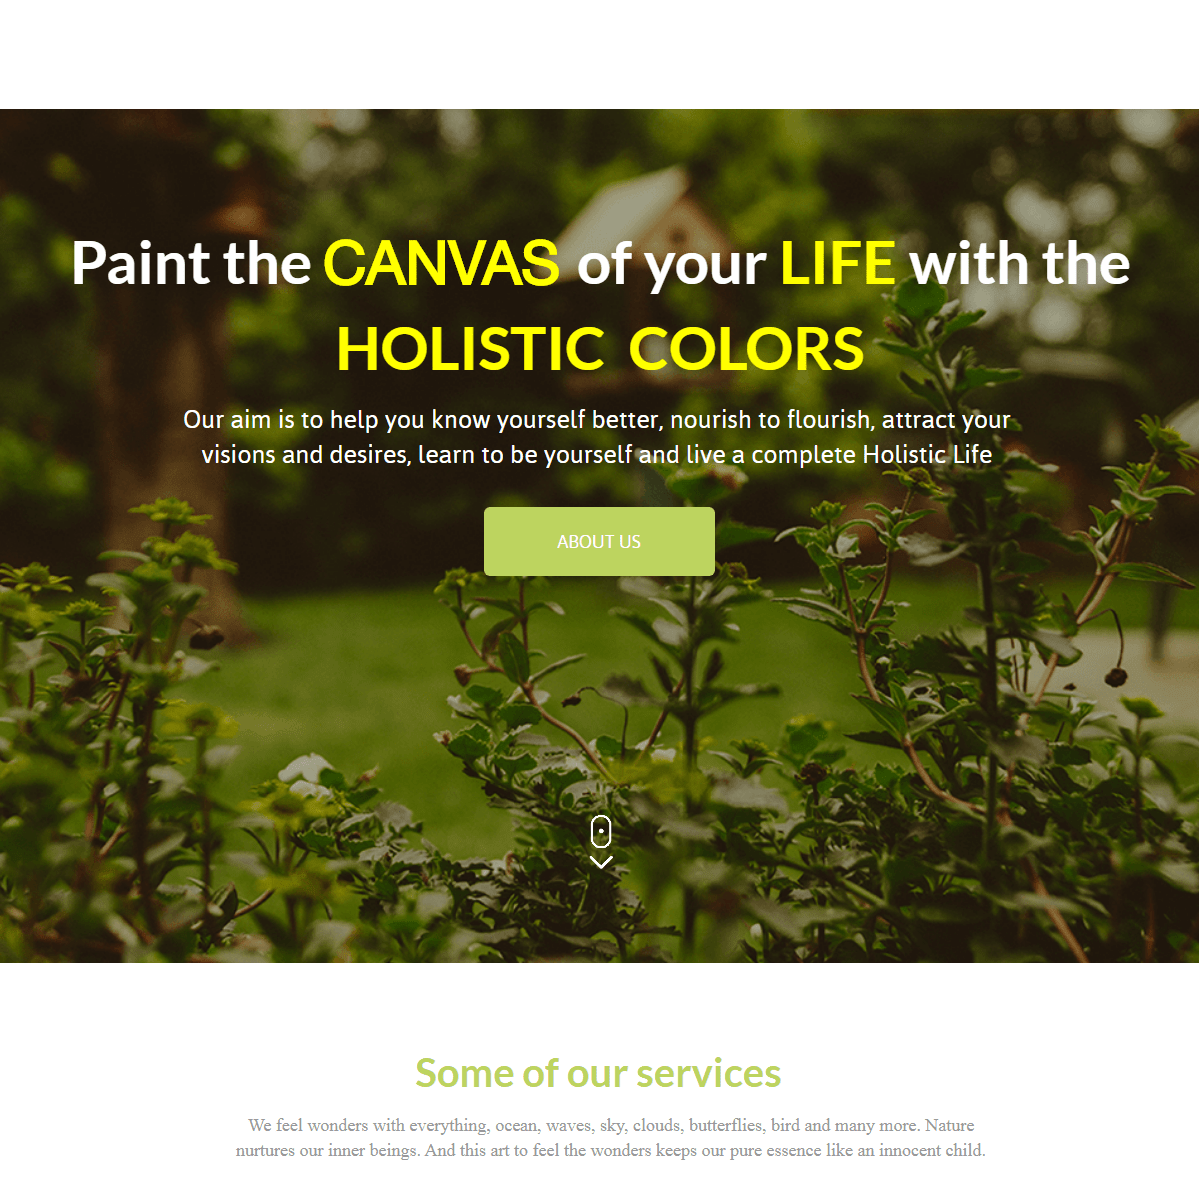 Paint the CANVAS of your LIFE with the HOLISTIC  COLORS Our aim is to help you know yourself better, nourish to  flourish, attract your visions and desires, learn to be  yourself and live a complete Holistic Life